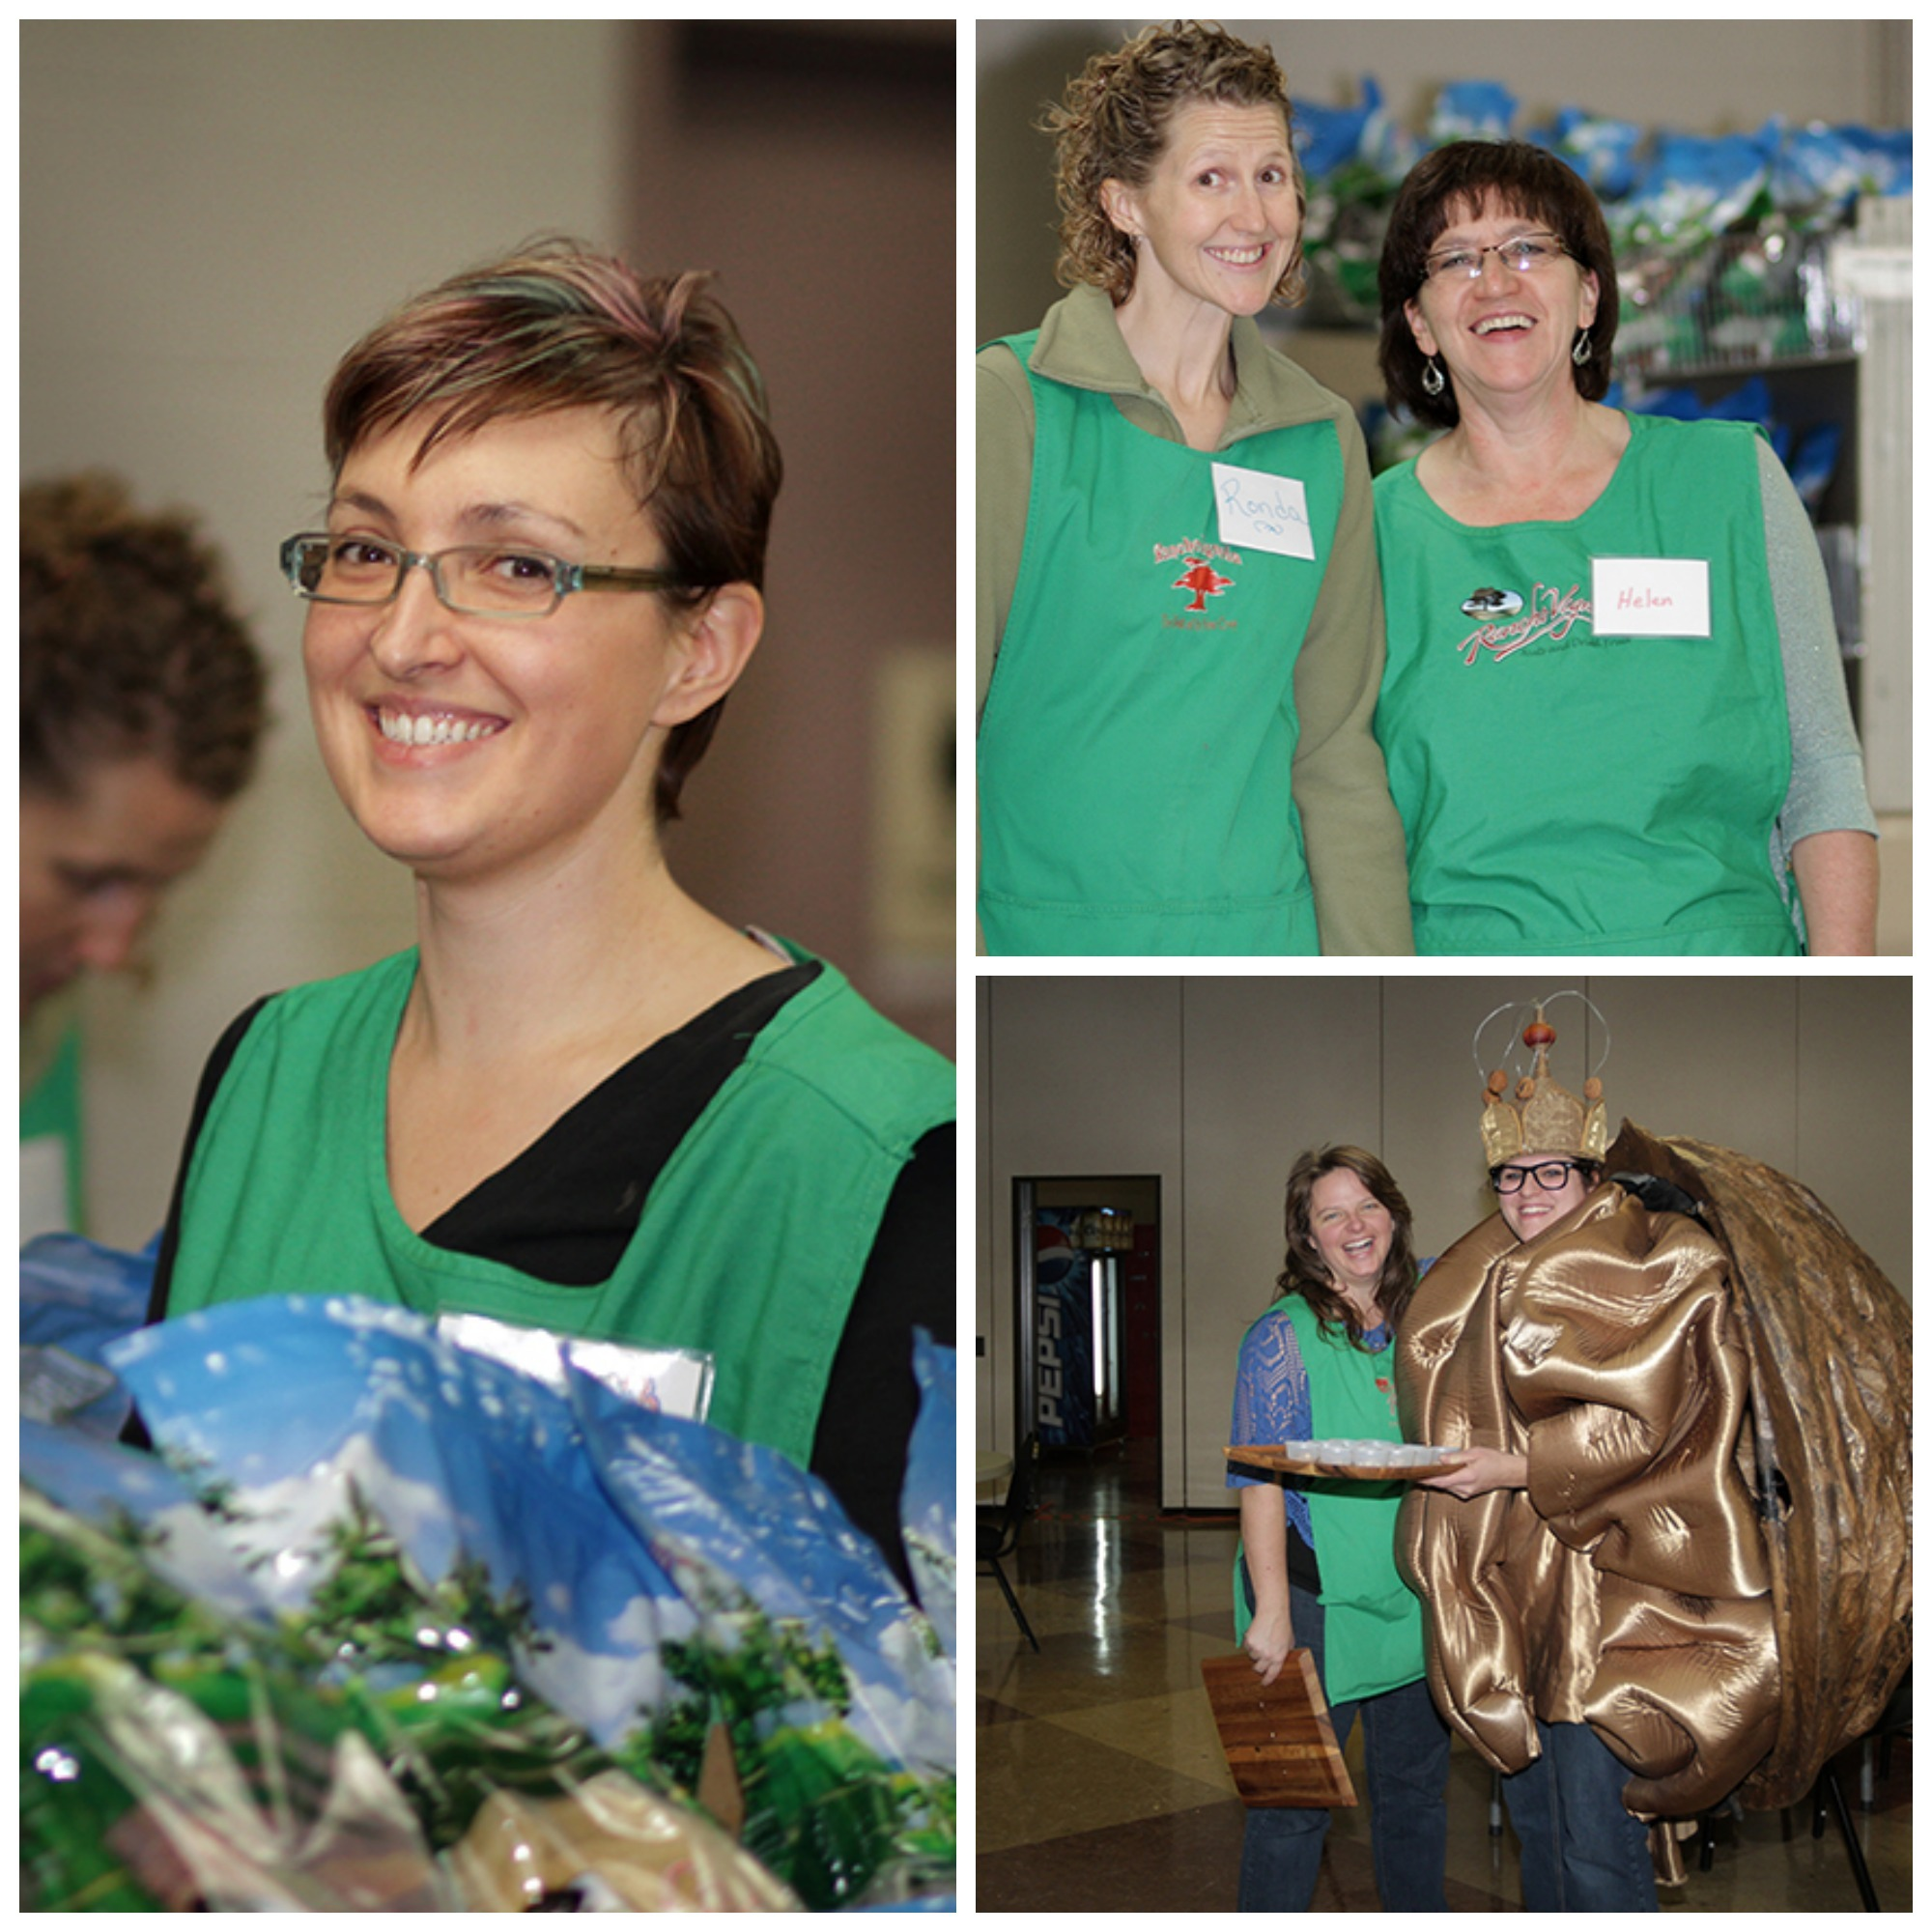 Big smiles and lots of helping hands made for a wonderful event in Camrose this year.